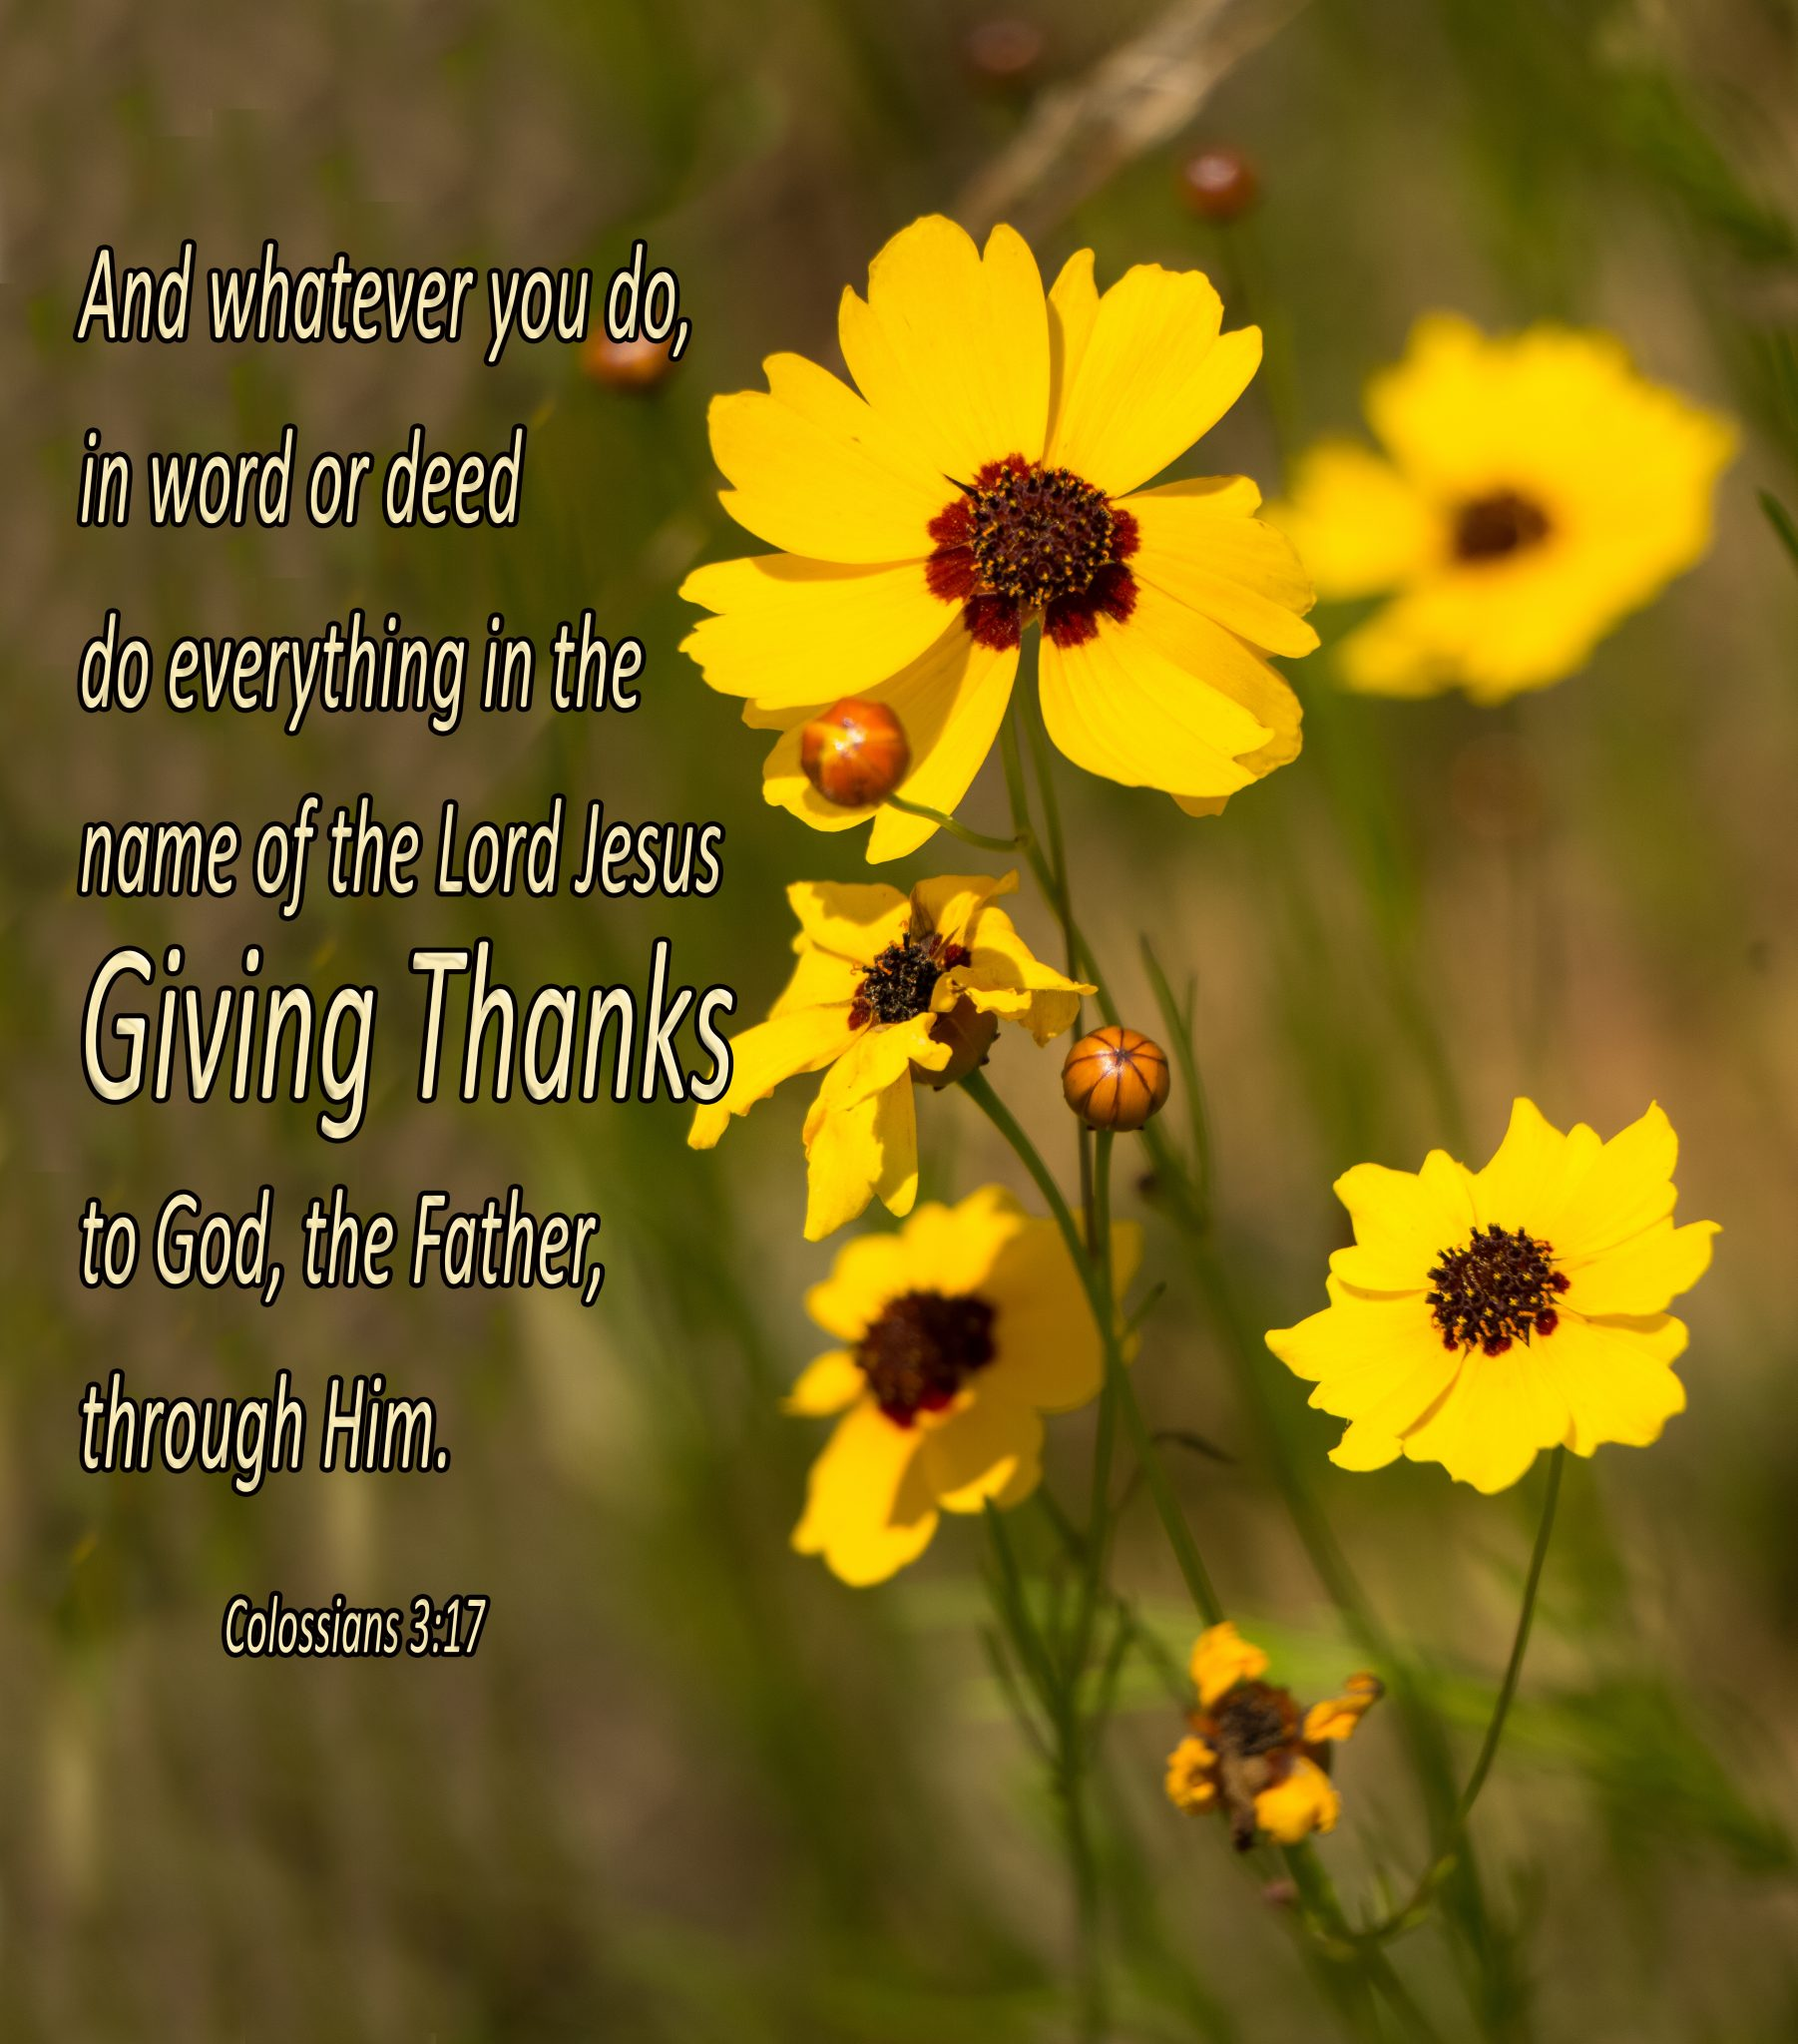 """1 Thessalonians 5:18 – """"Give thanks in all circumstances; for this is the will of God in Christ Jesus for you."""""""